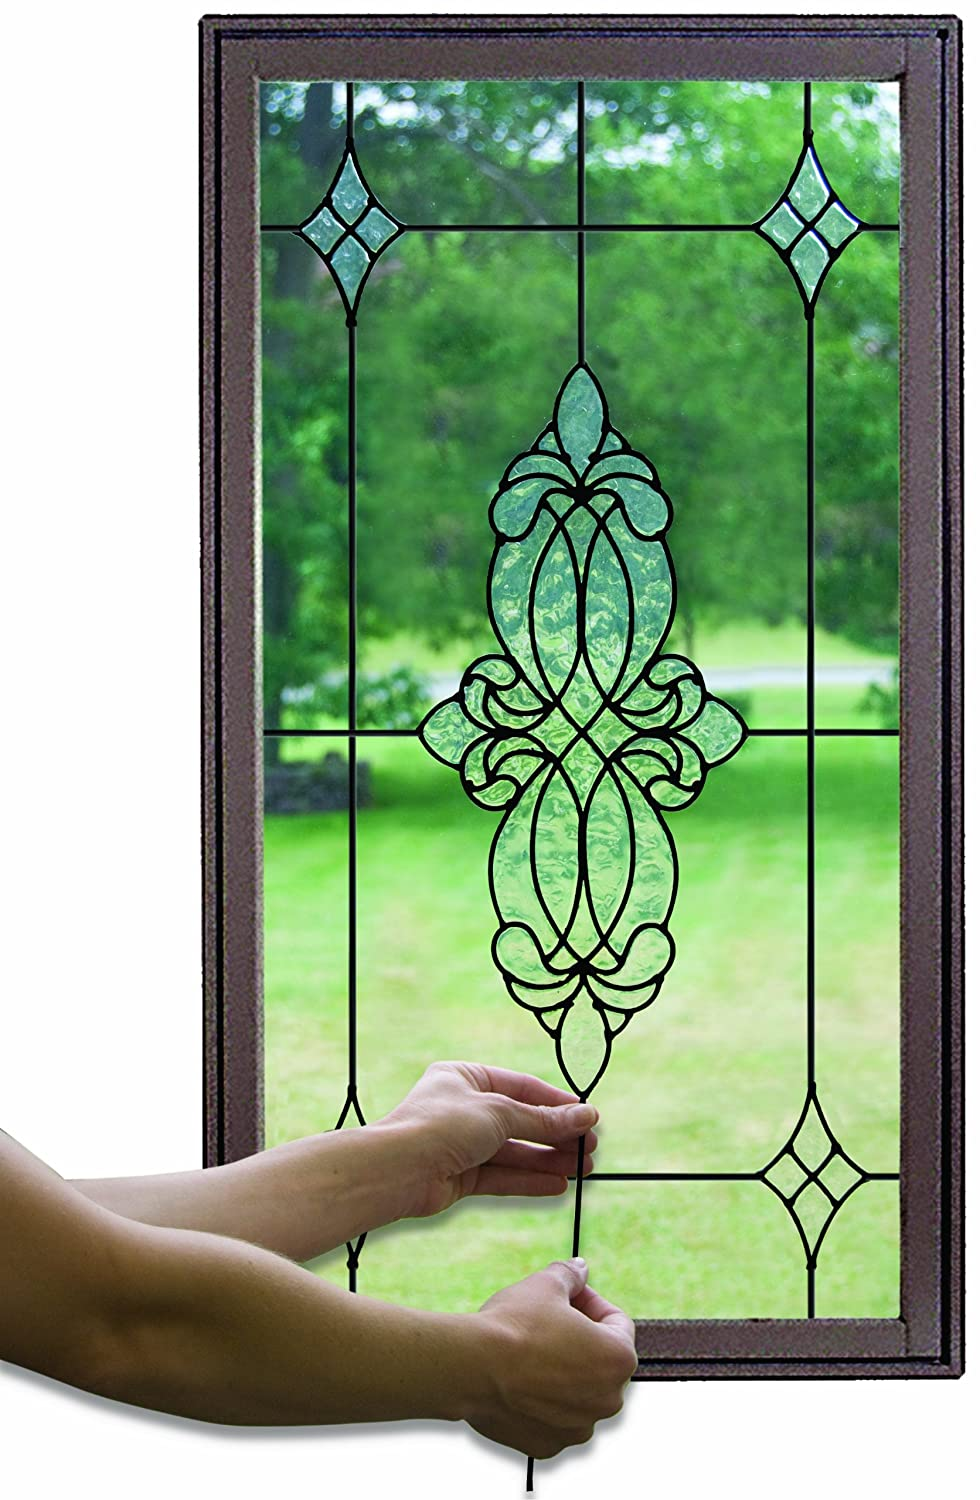 Stained glass caming lines window film handcrafted black for Stained glass window film